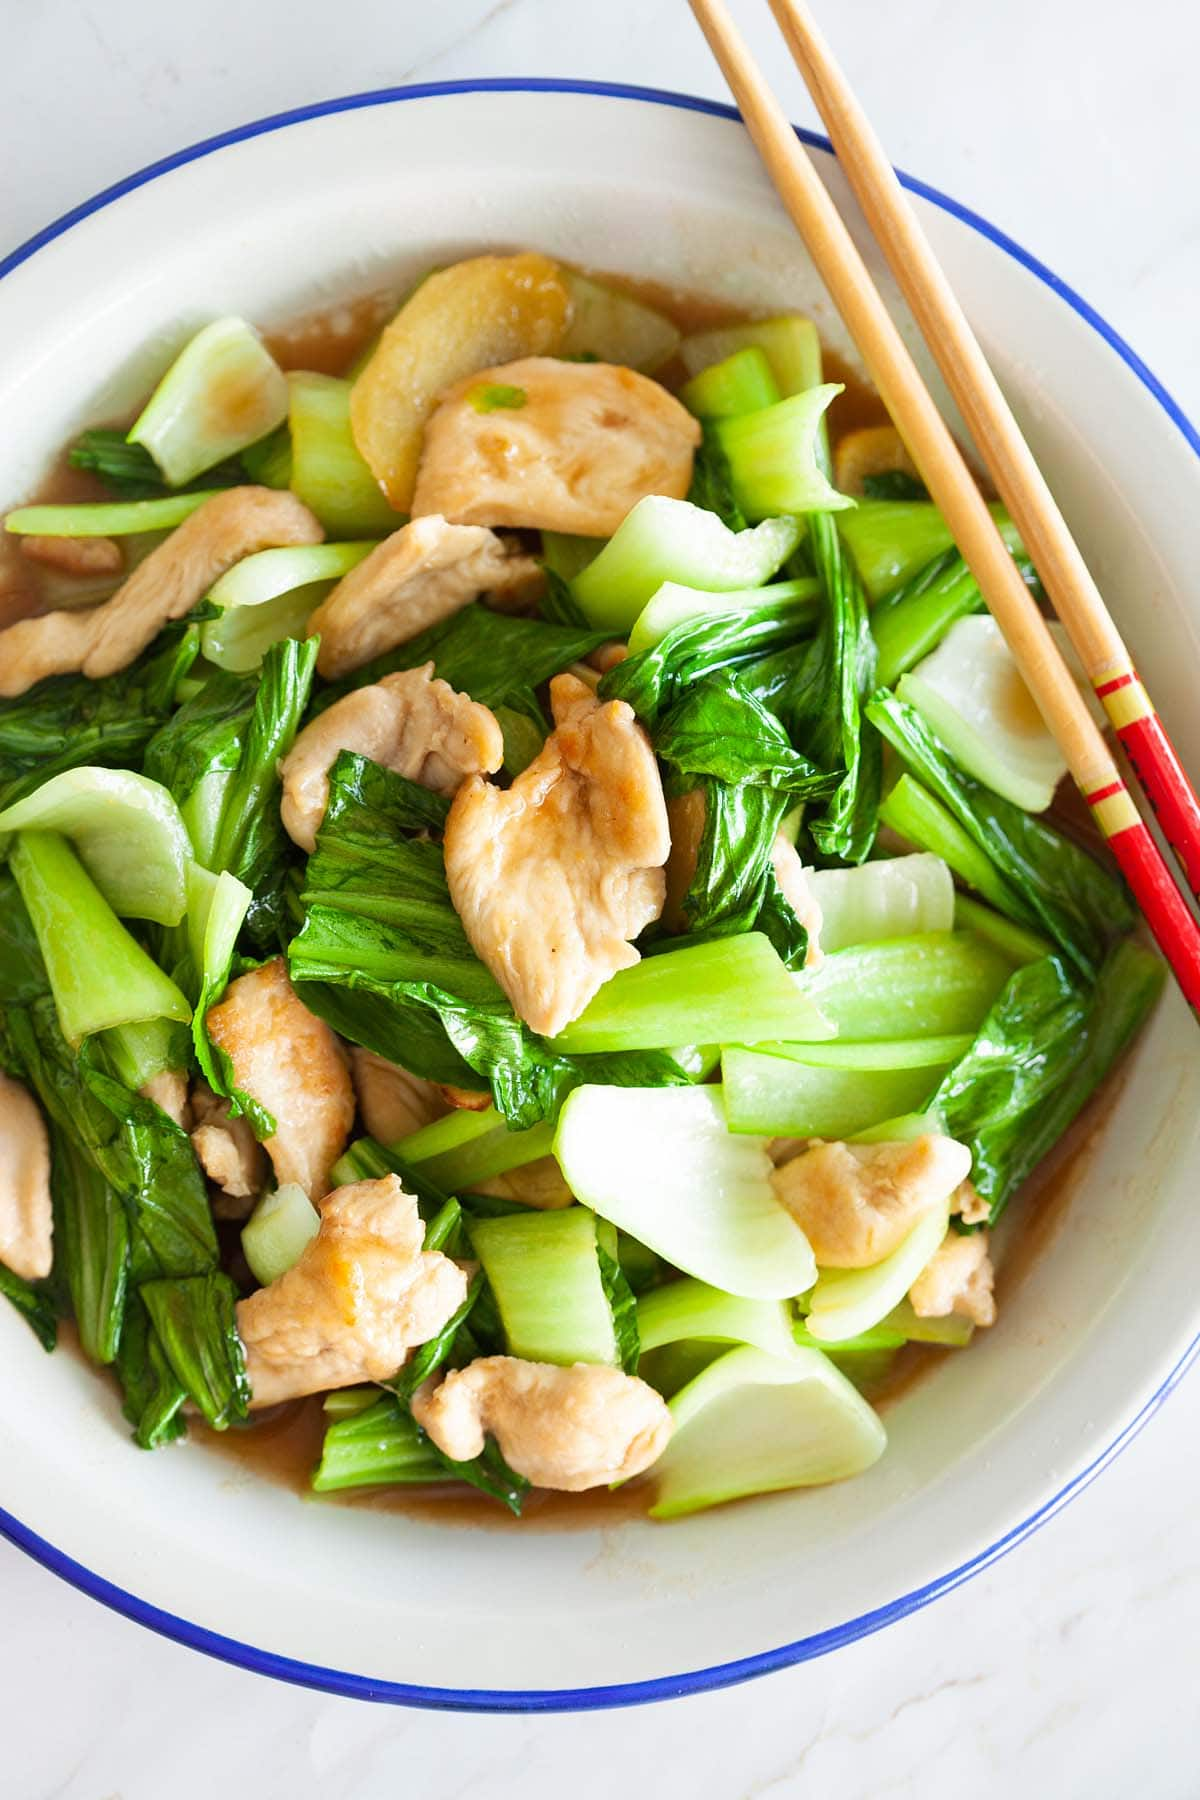 Bok choy chicken in plate.